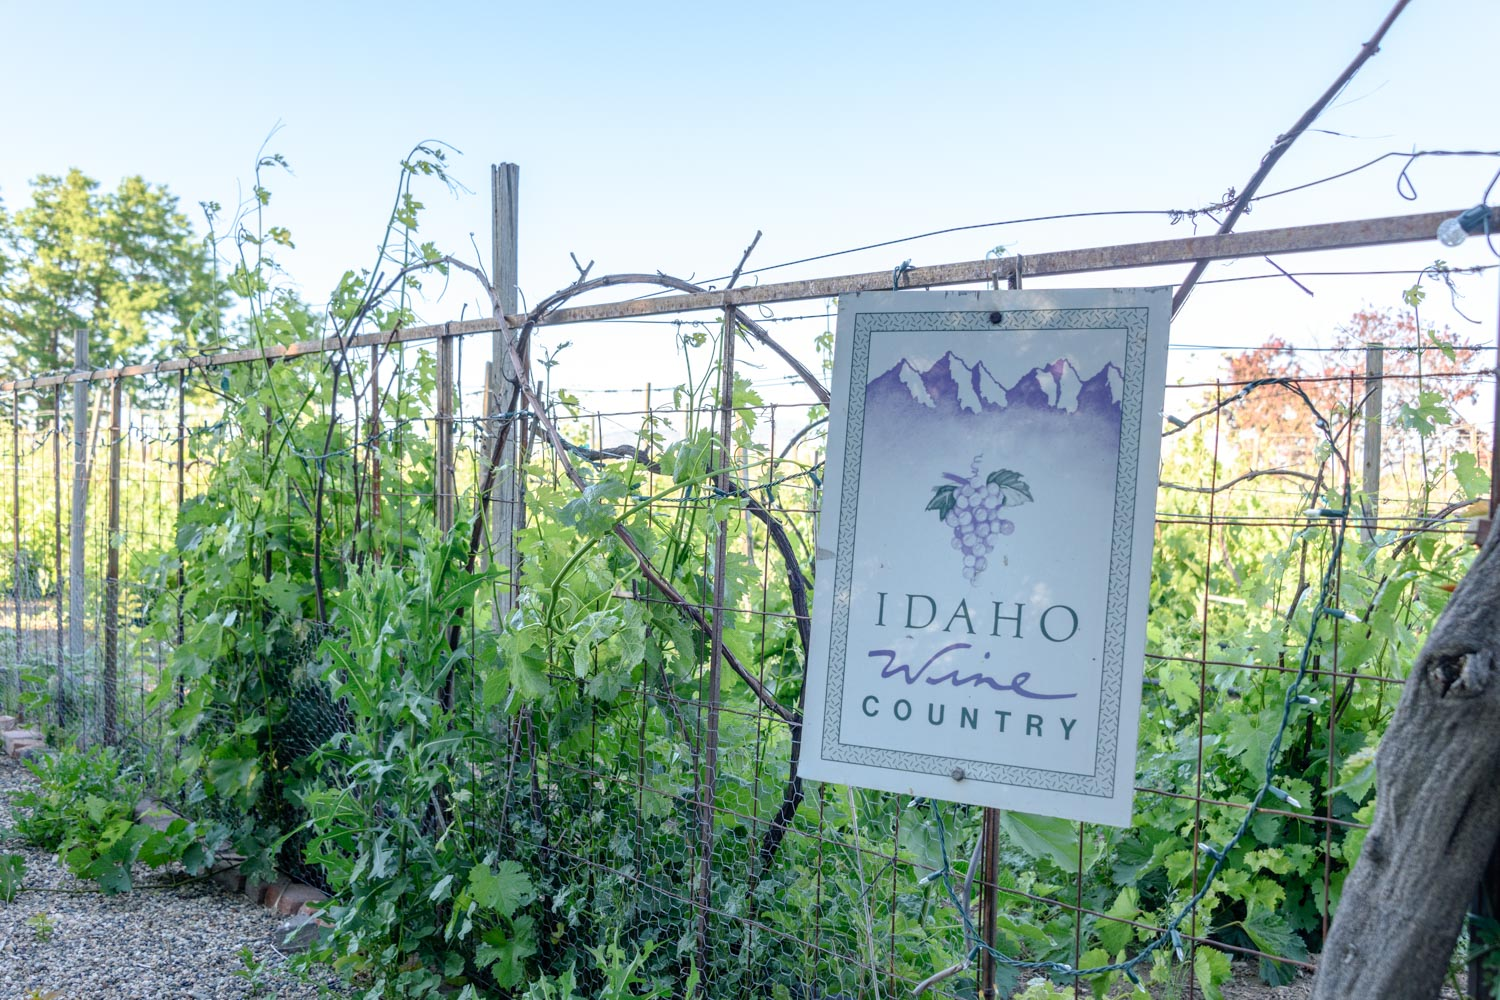 Sign at Sandstone Vineyards, Idaho Wine Country